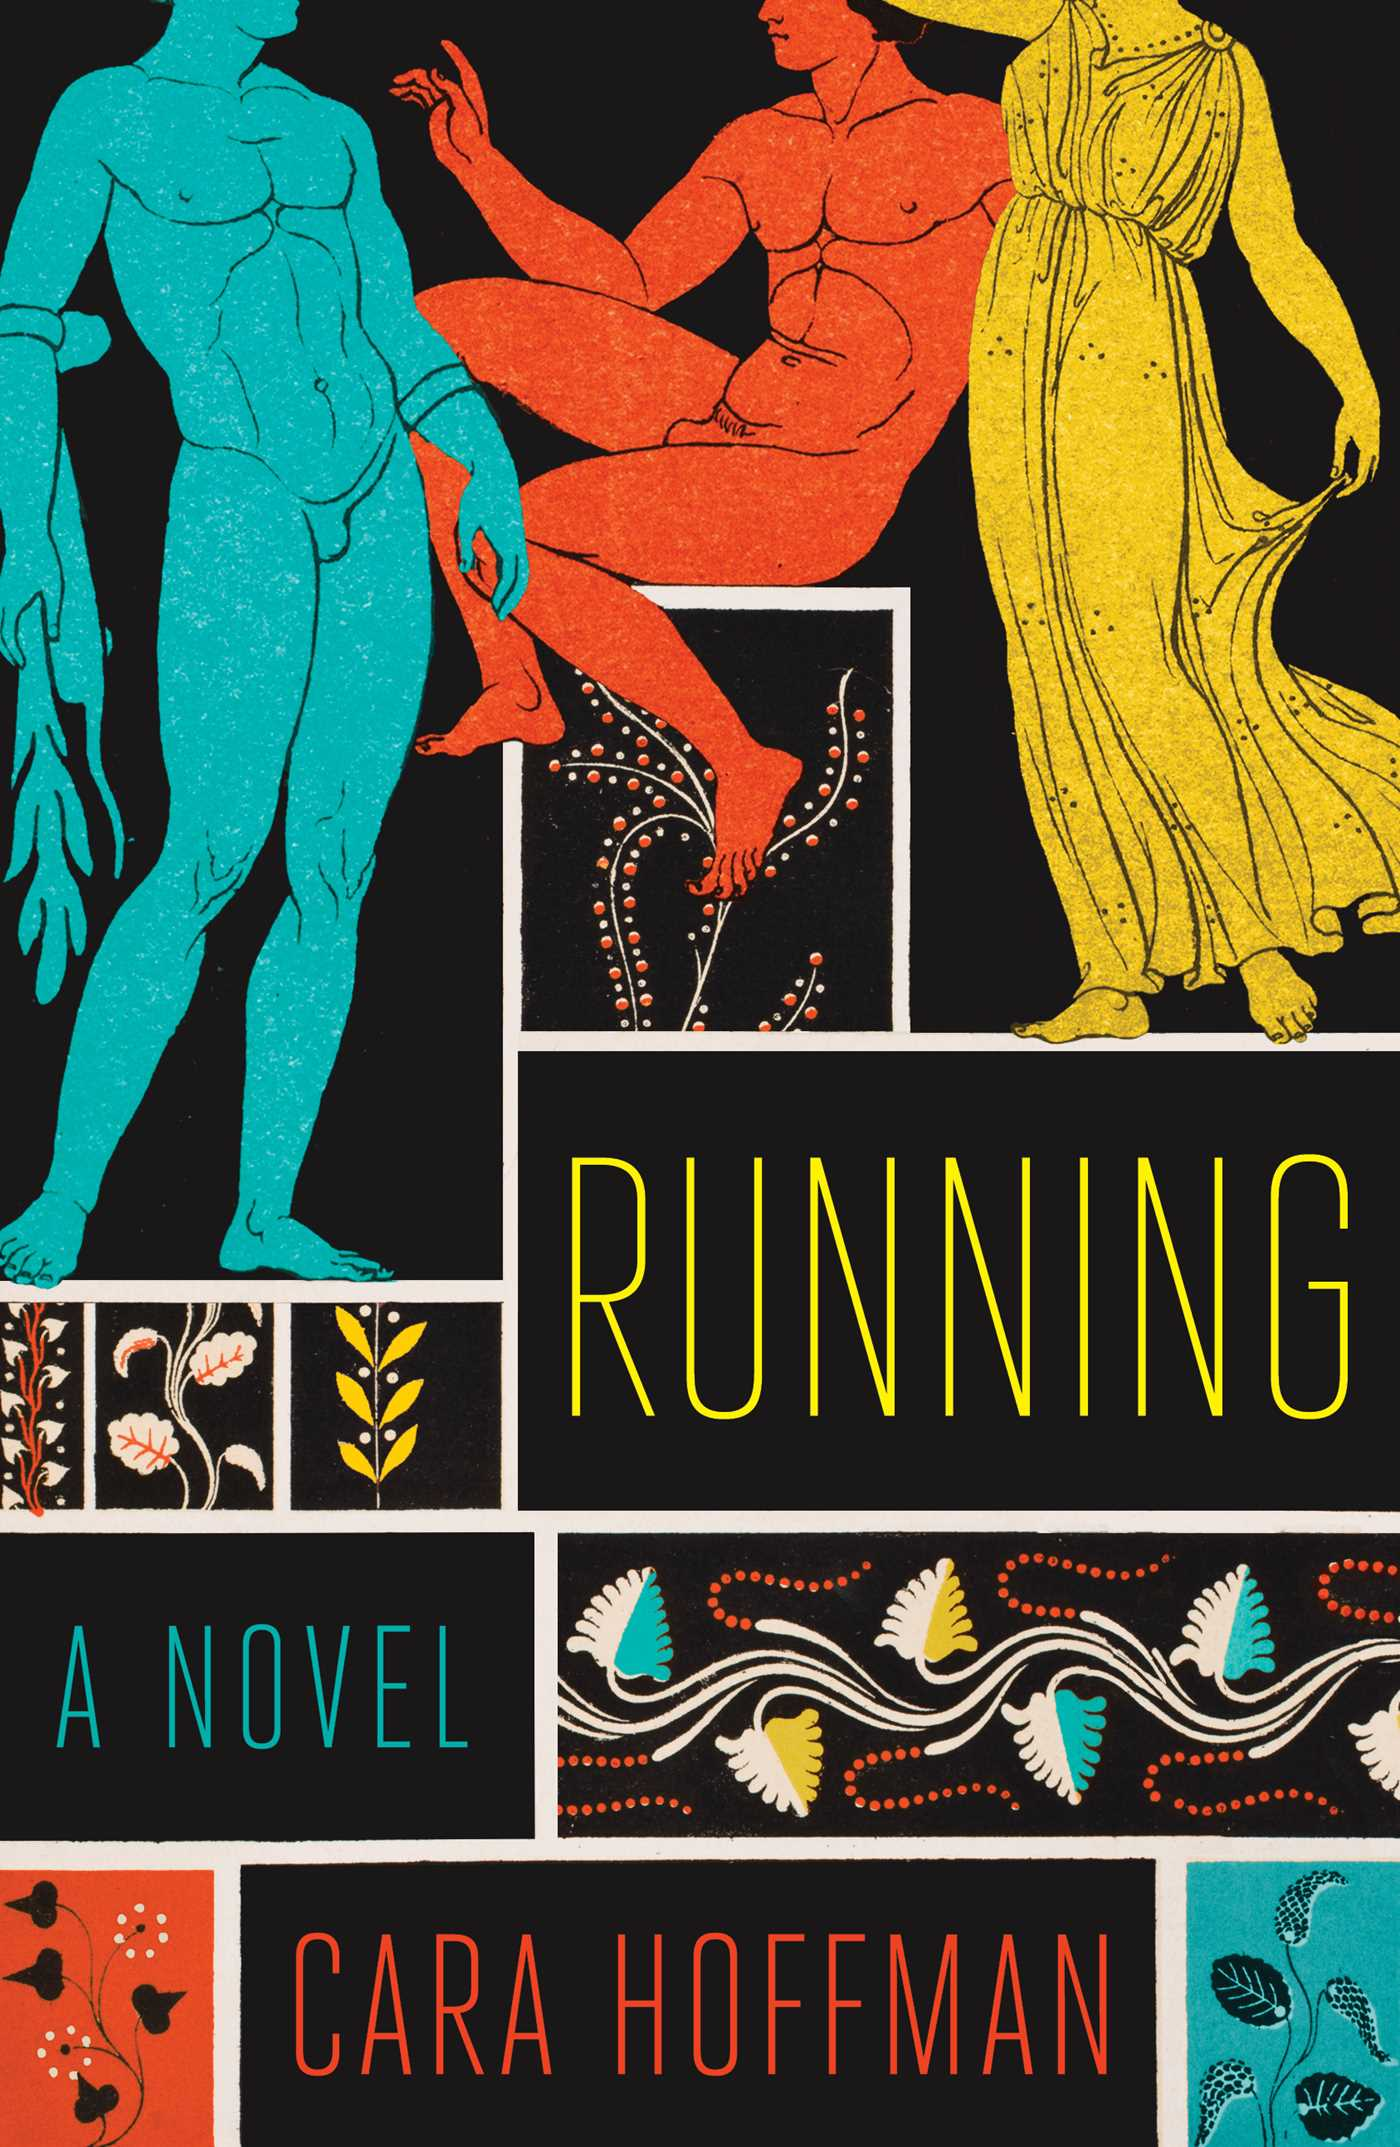 Running Book By Cara Hoffman Official Publisher Page border=